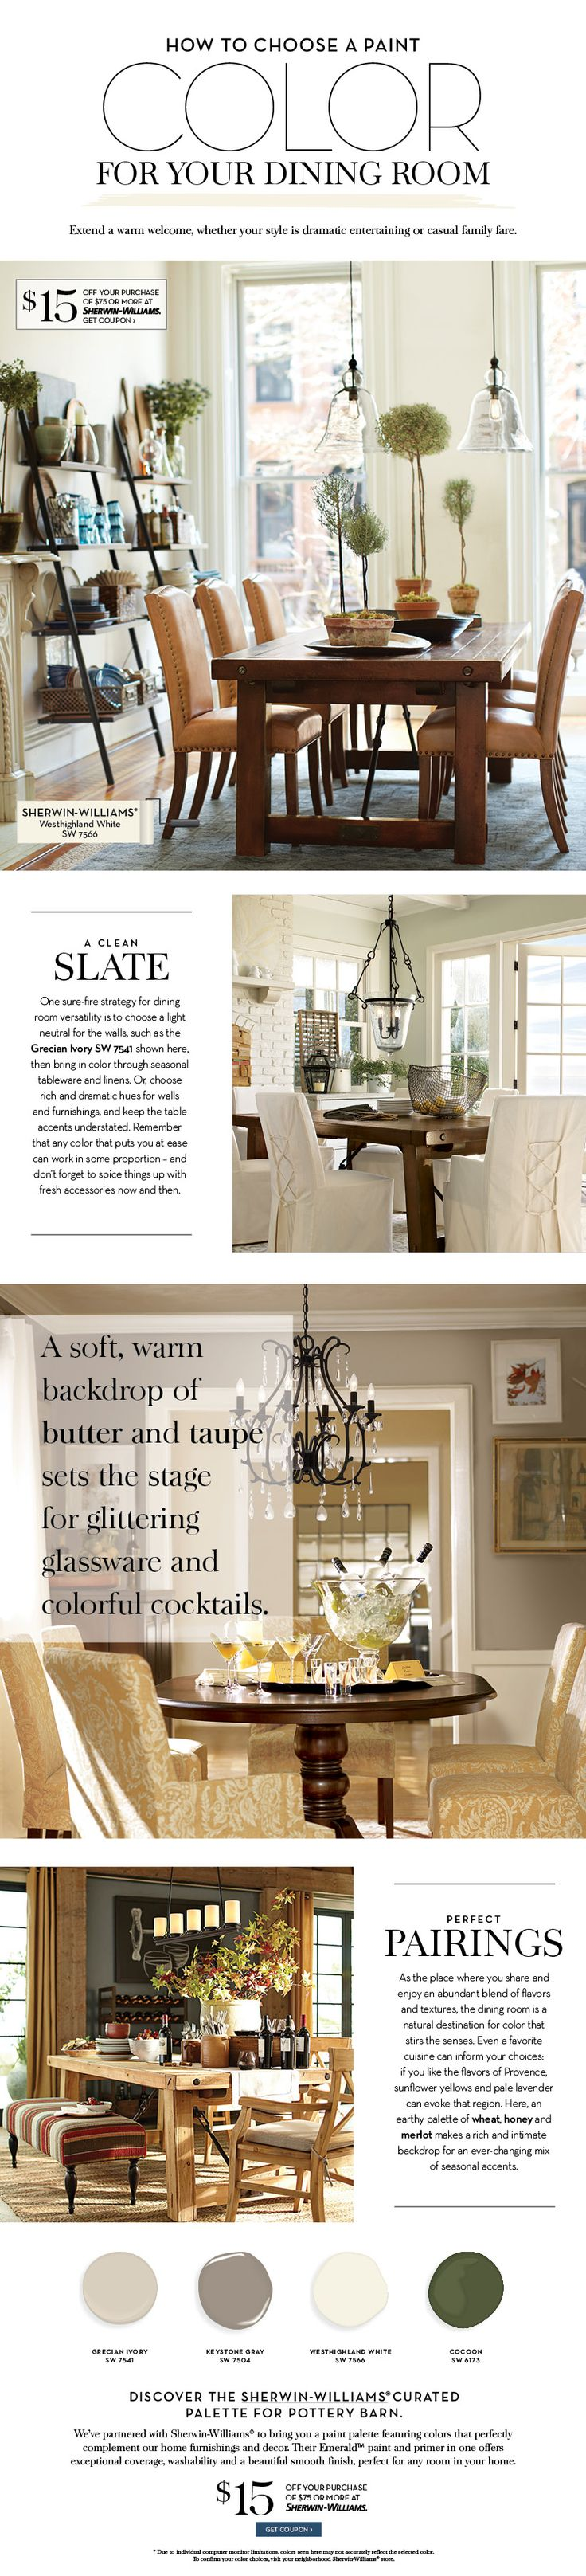 Awesome pottery barn dining room ideas 1 white farmhouse dining - How To Choose A Paint Color For Your Dining Room